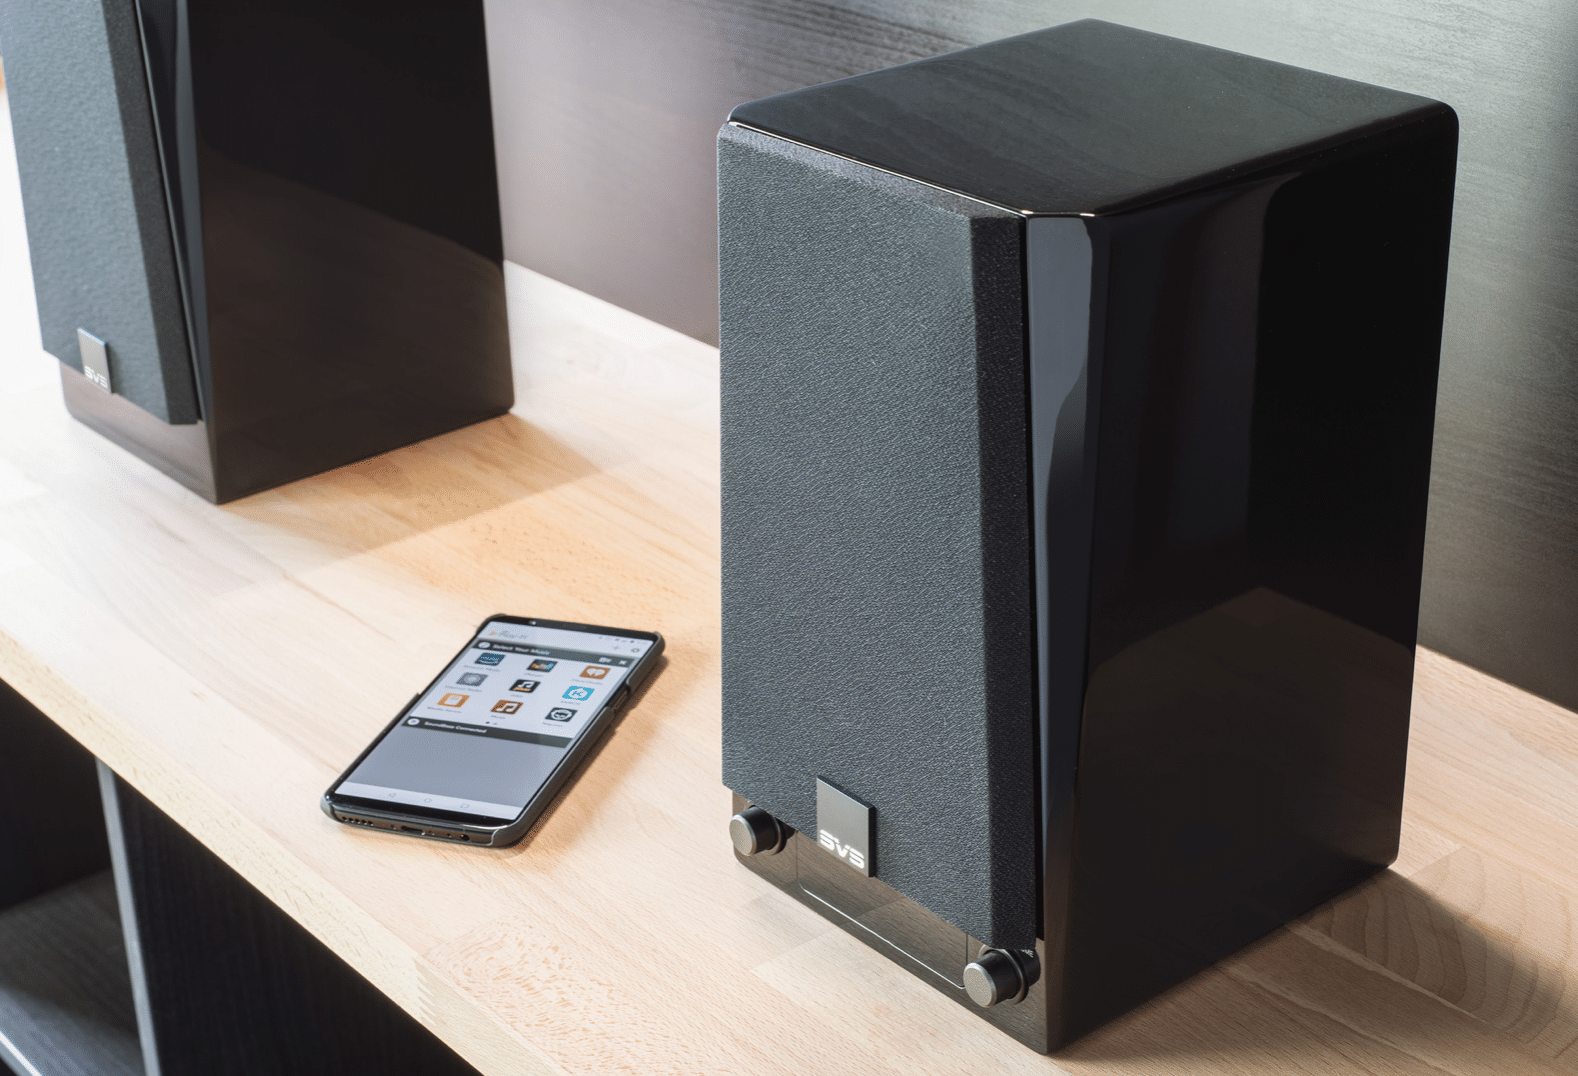 SVS Prime Wireless Speakers & Bridge